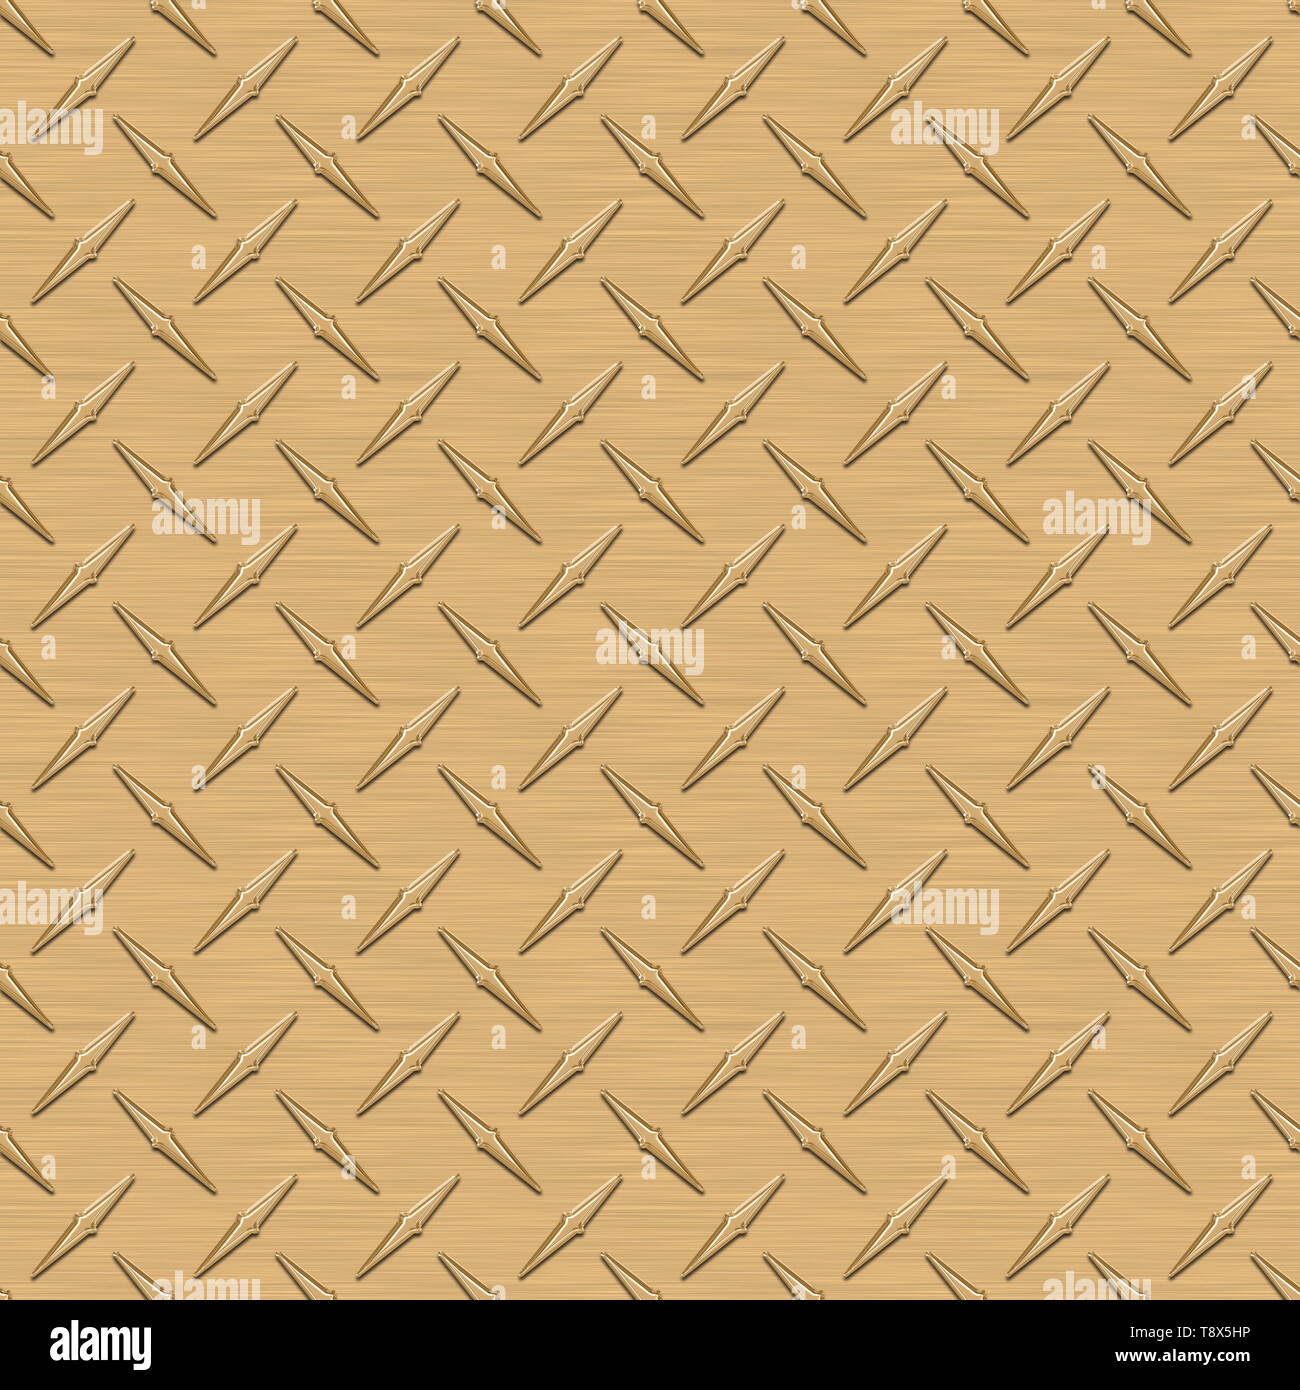 Gold Diamond Plate Metal Seamless Texture Tile - Stock Image